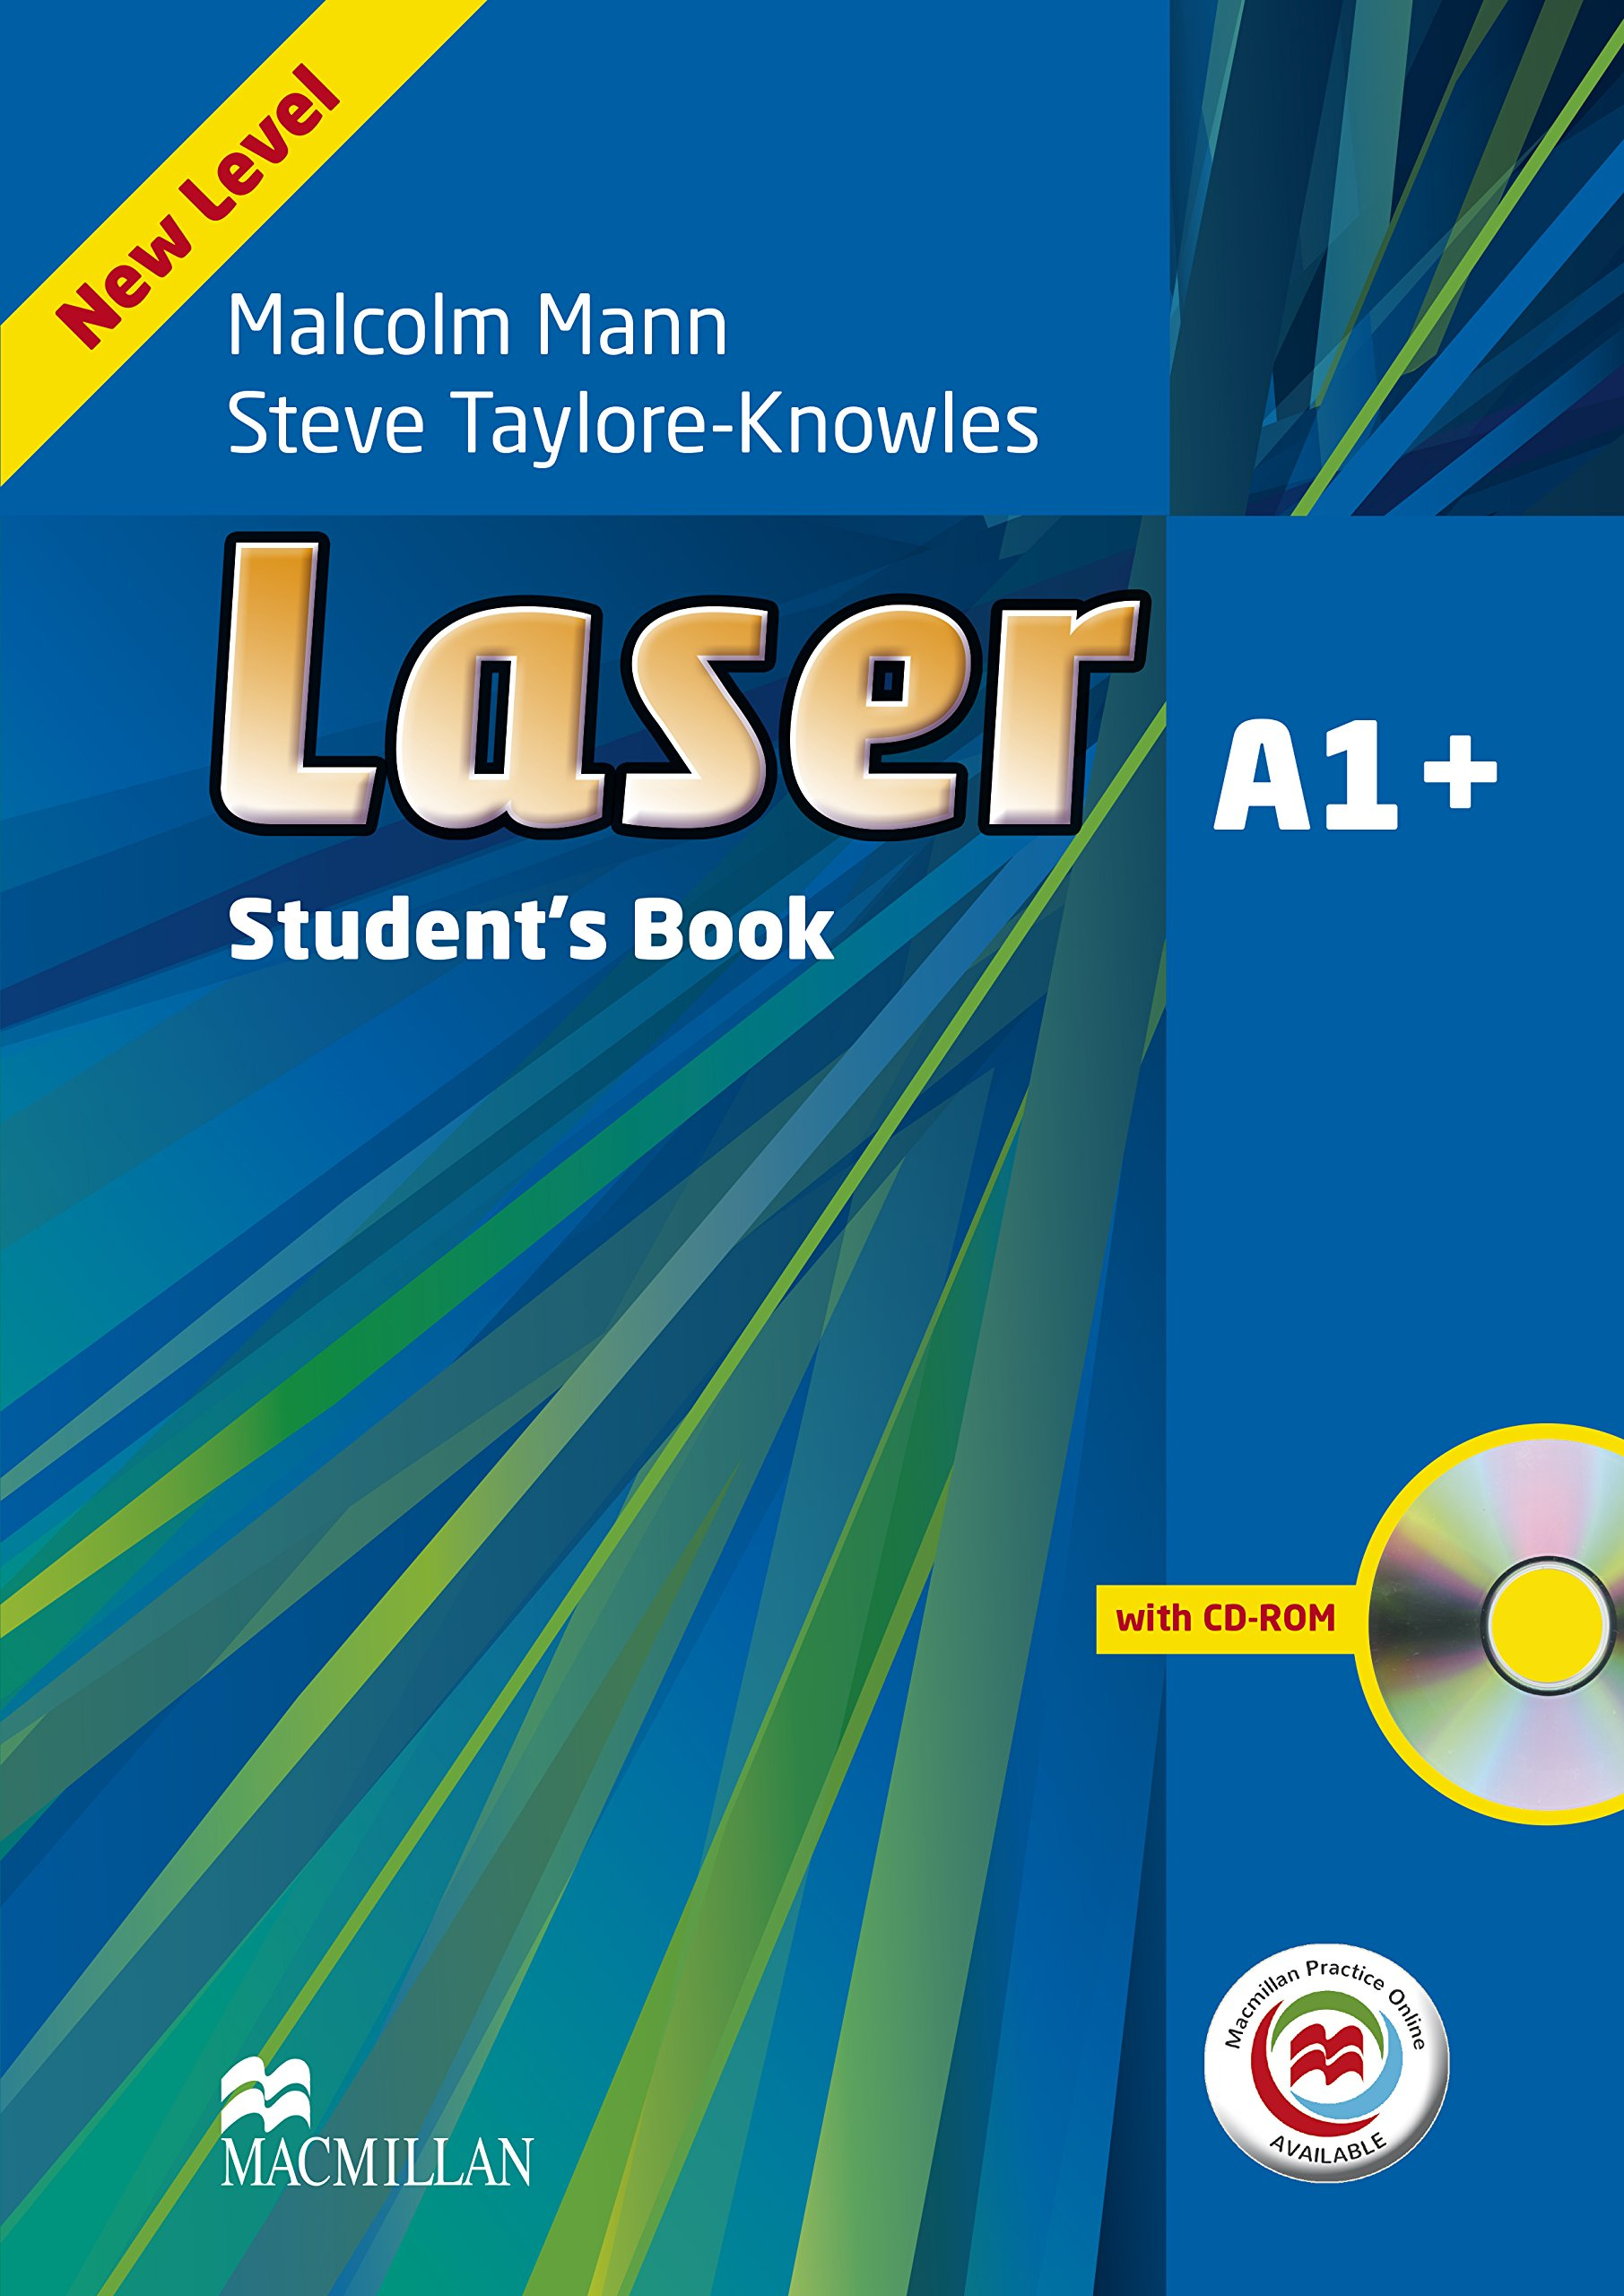 Read Online Laser A1+ Students Book CD Rom and Macmillan Practice Online pdf